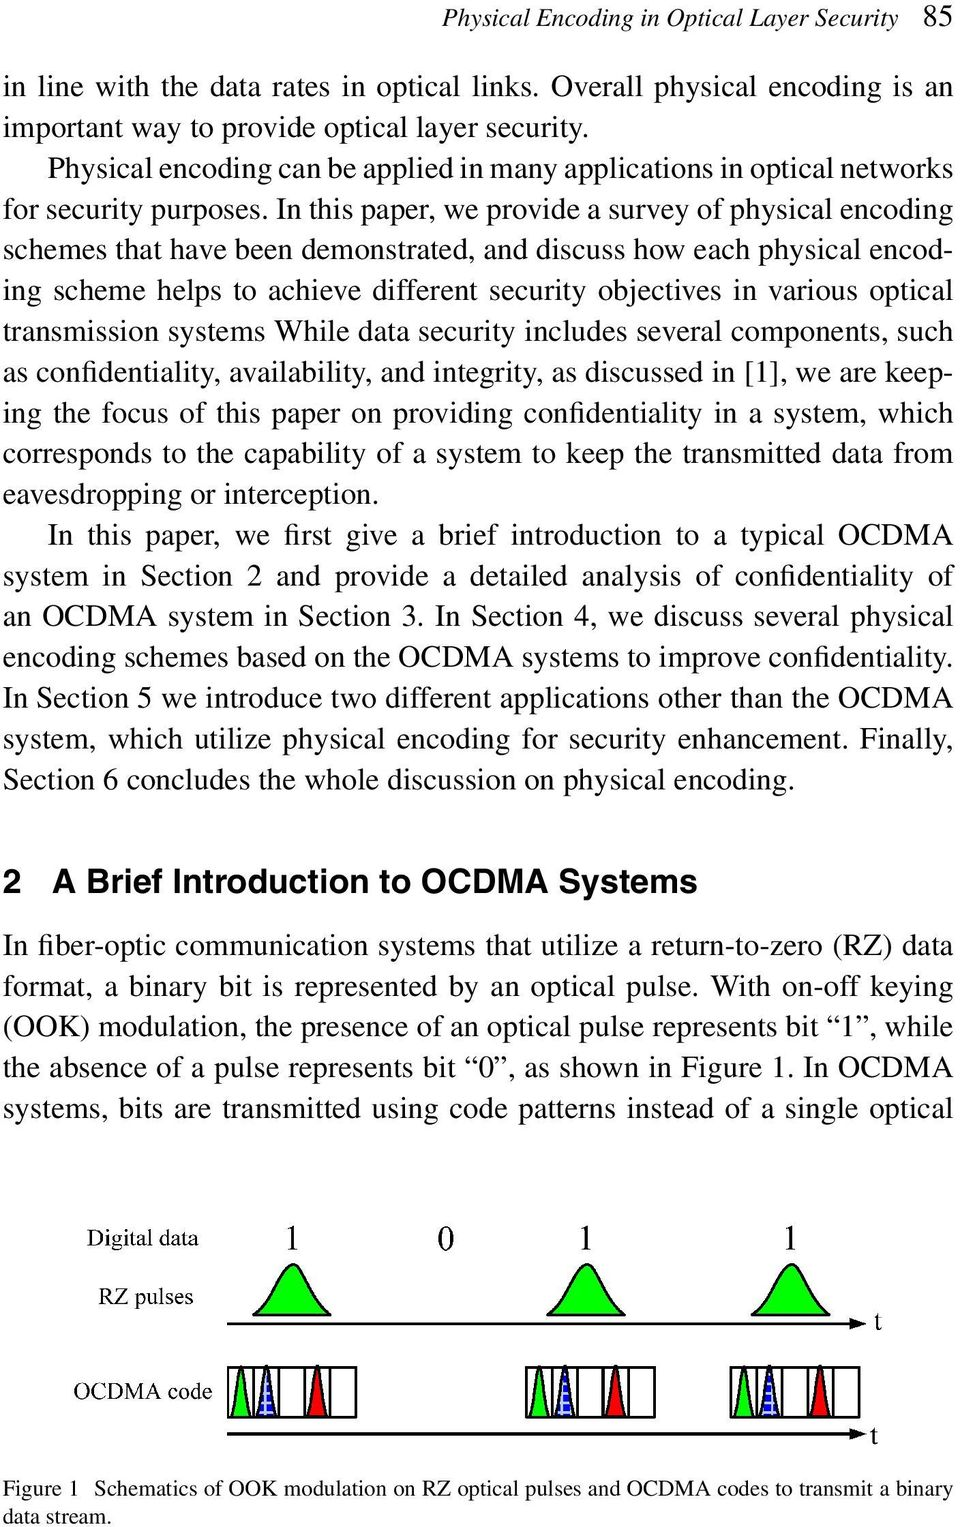 In this paper, we provide a survey of physical encoding schemes that have been demonstrated, and discuss how each physical encoding scheme helps to achieve different security objectives in various